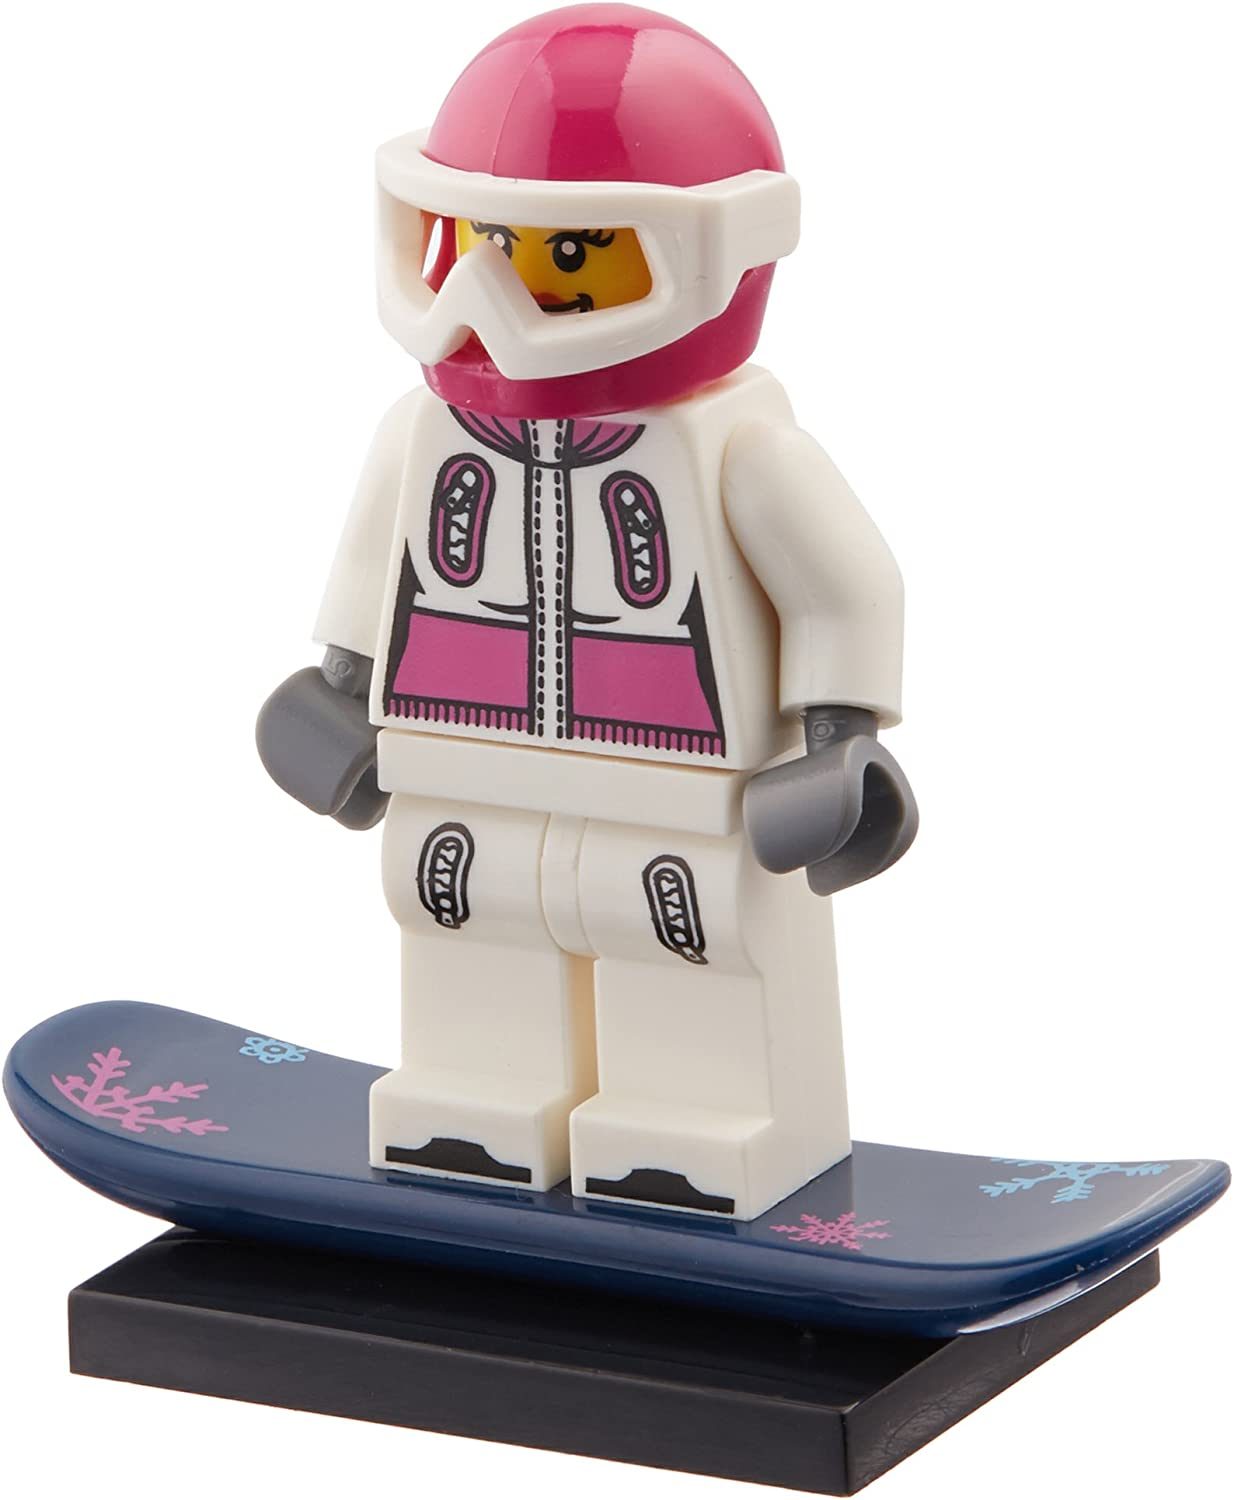 LEGO: Minifigures Series 3 Female Snowboarder Mini-Figure